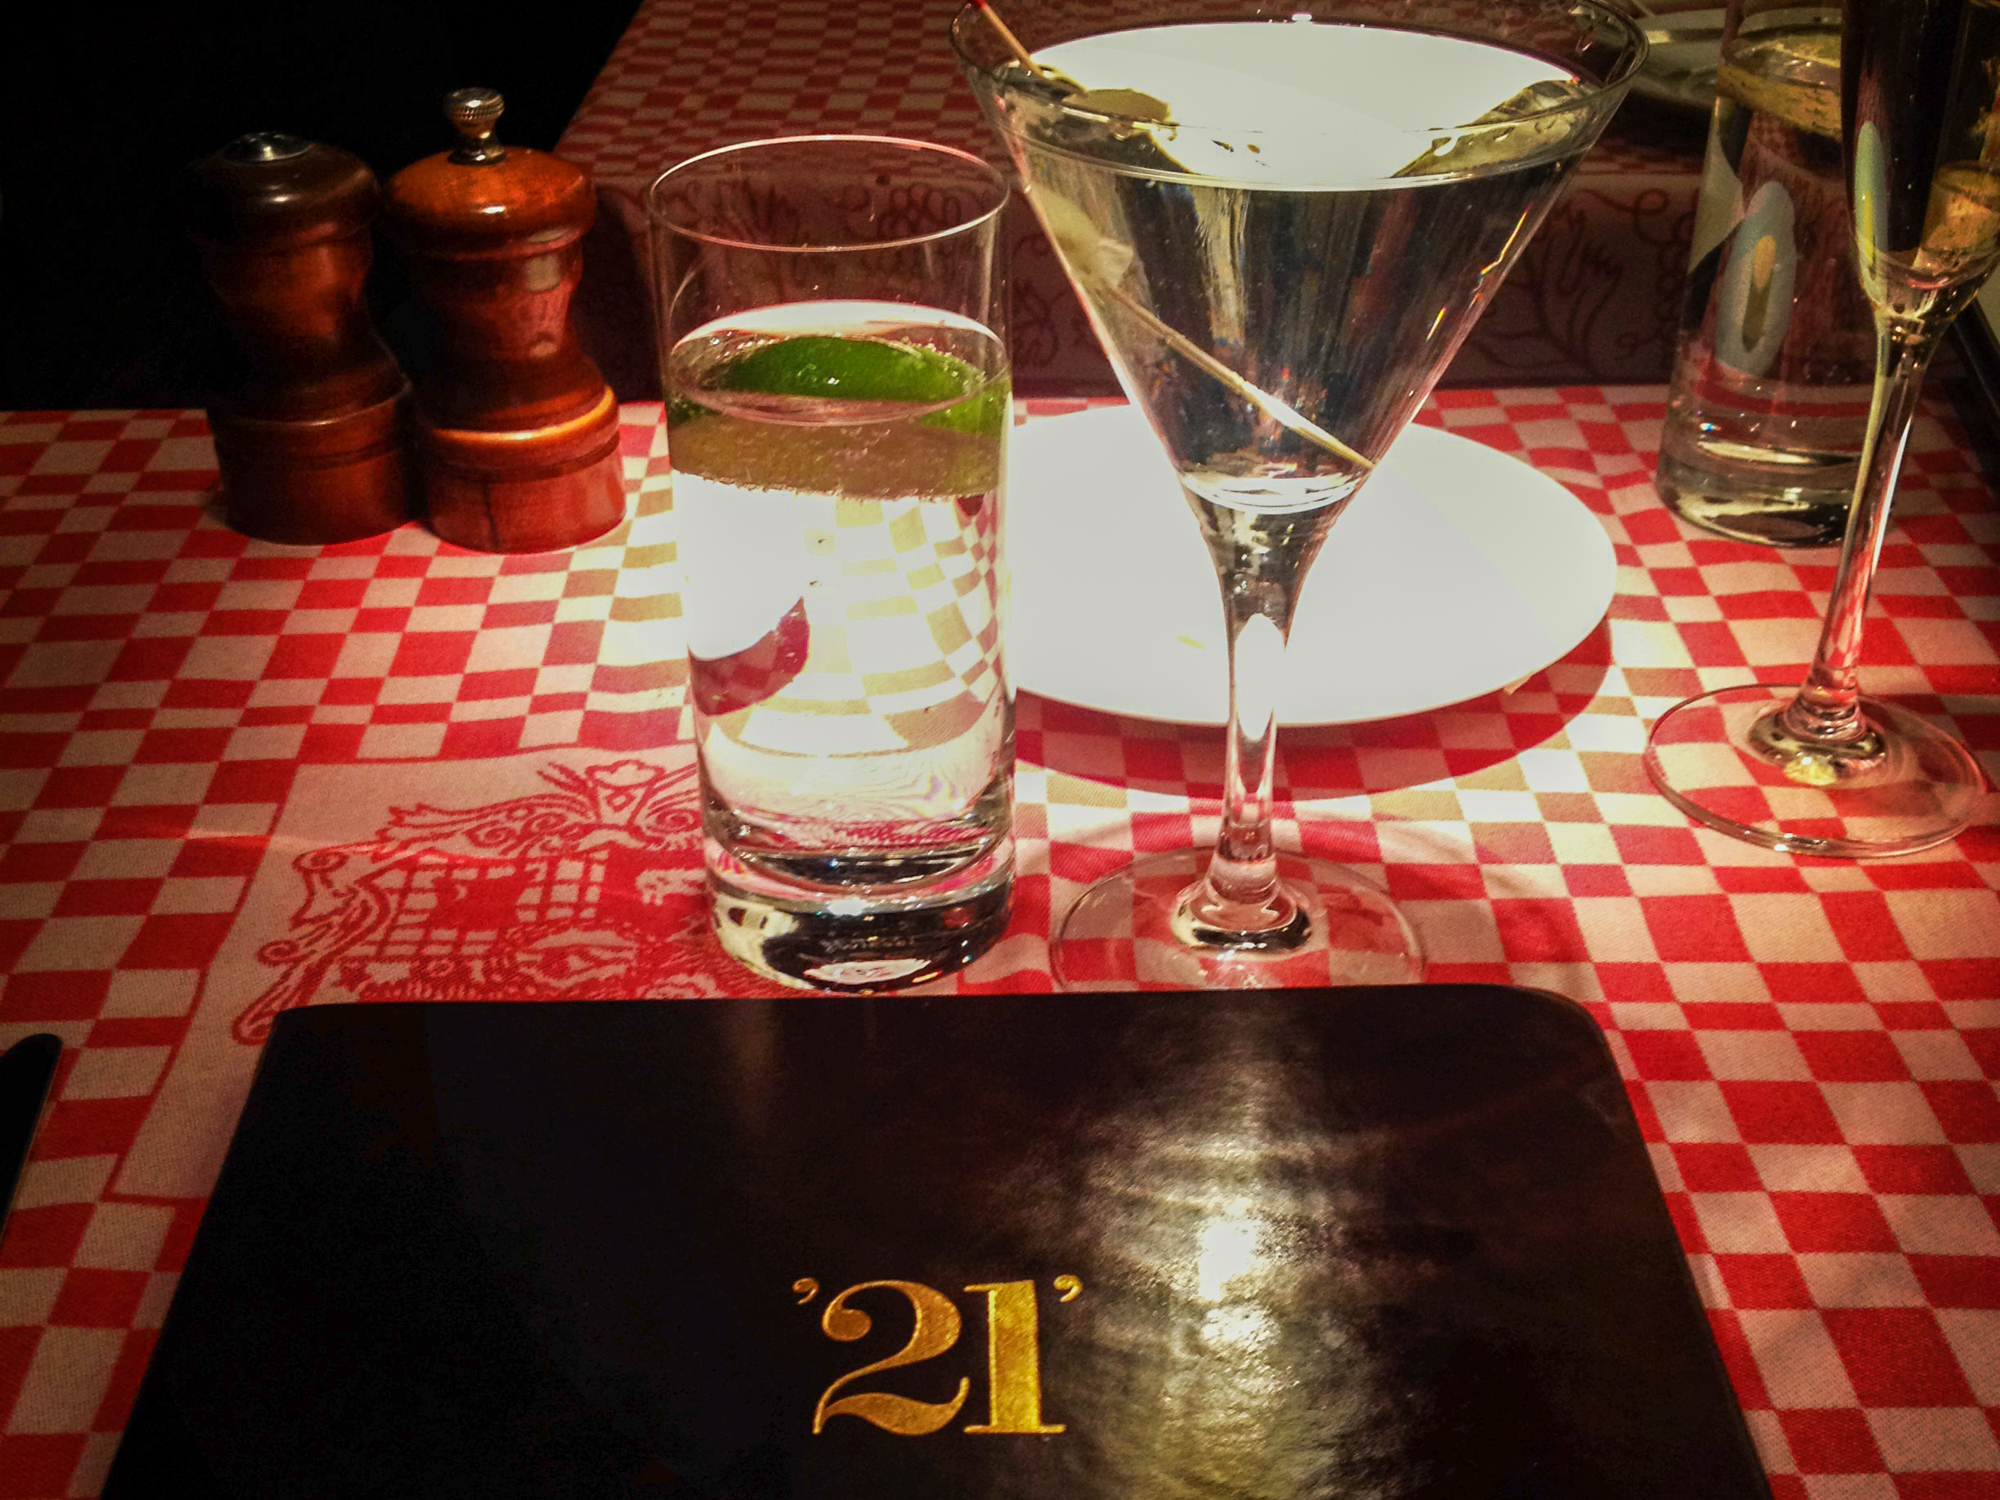 A Plymouth Gibson cocktail at 21 in NYC